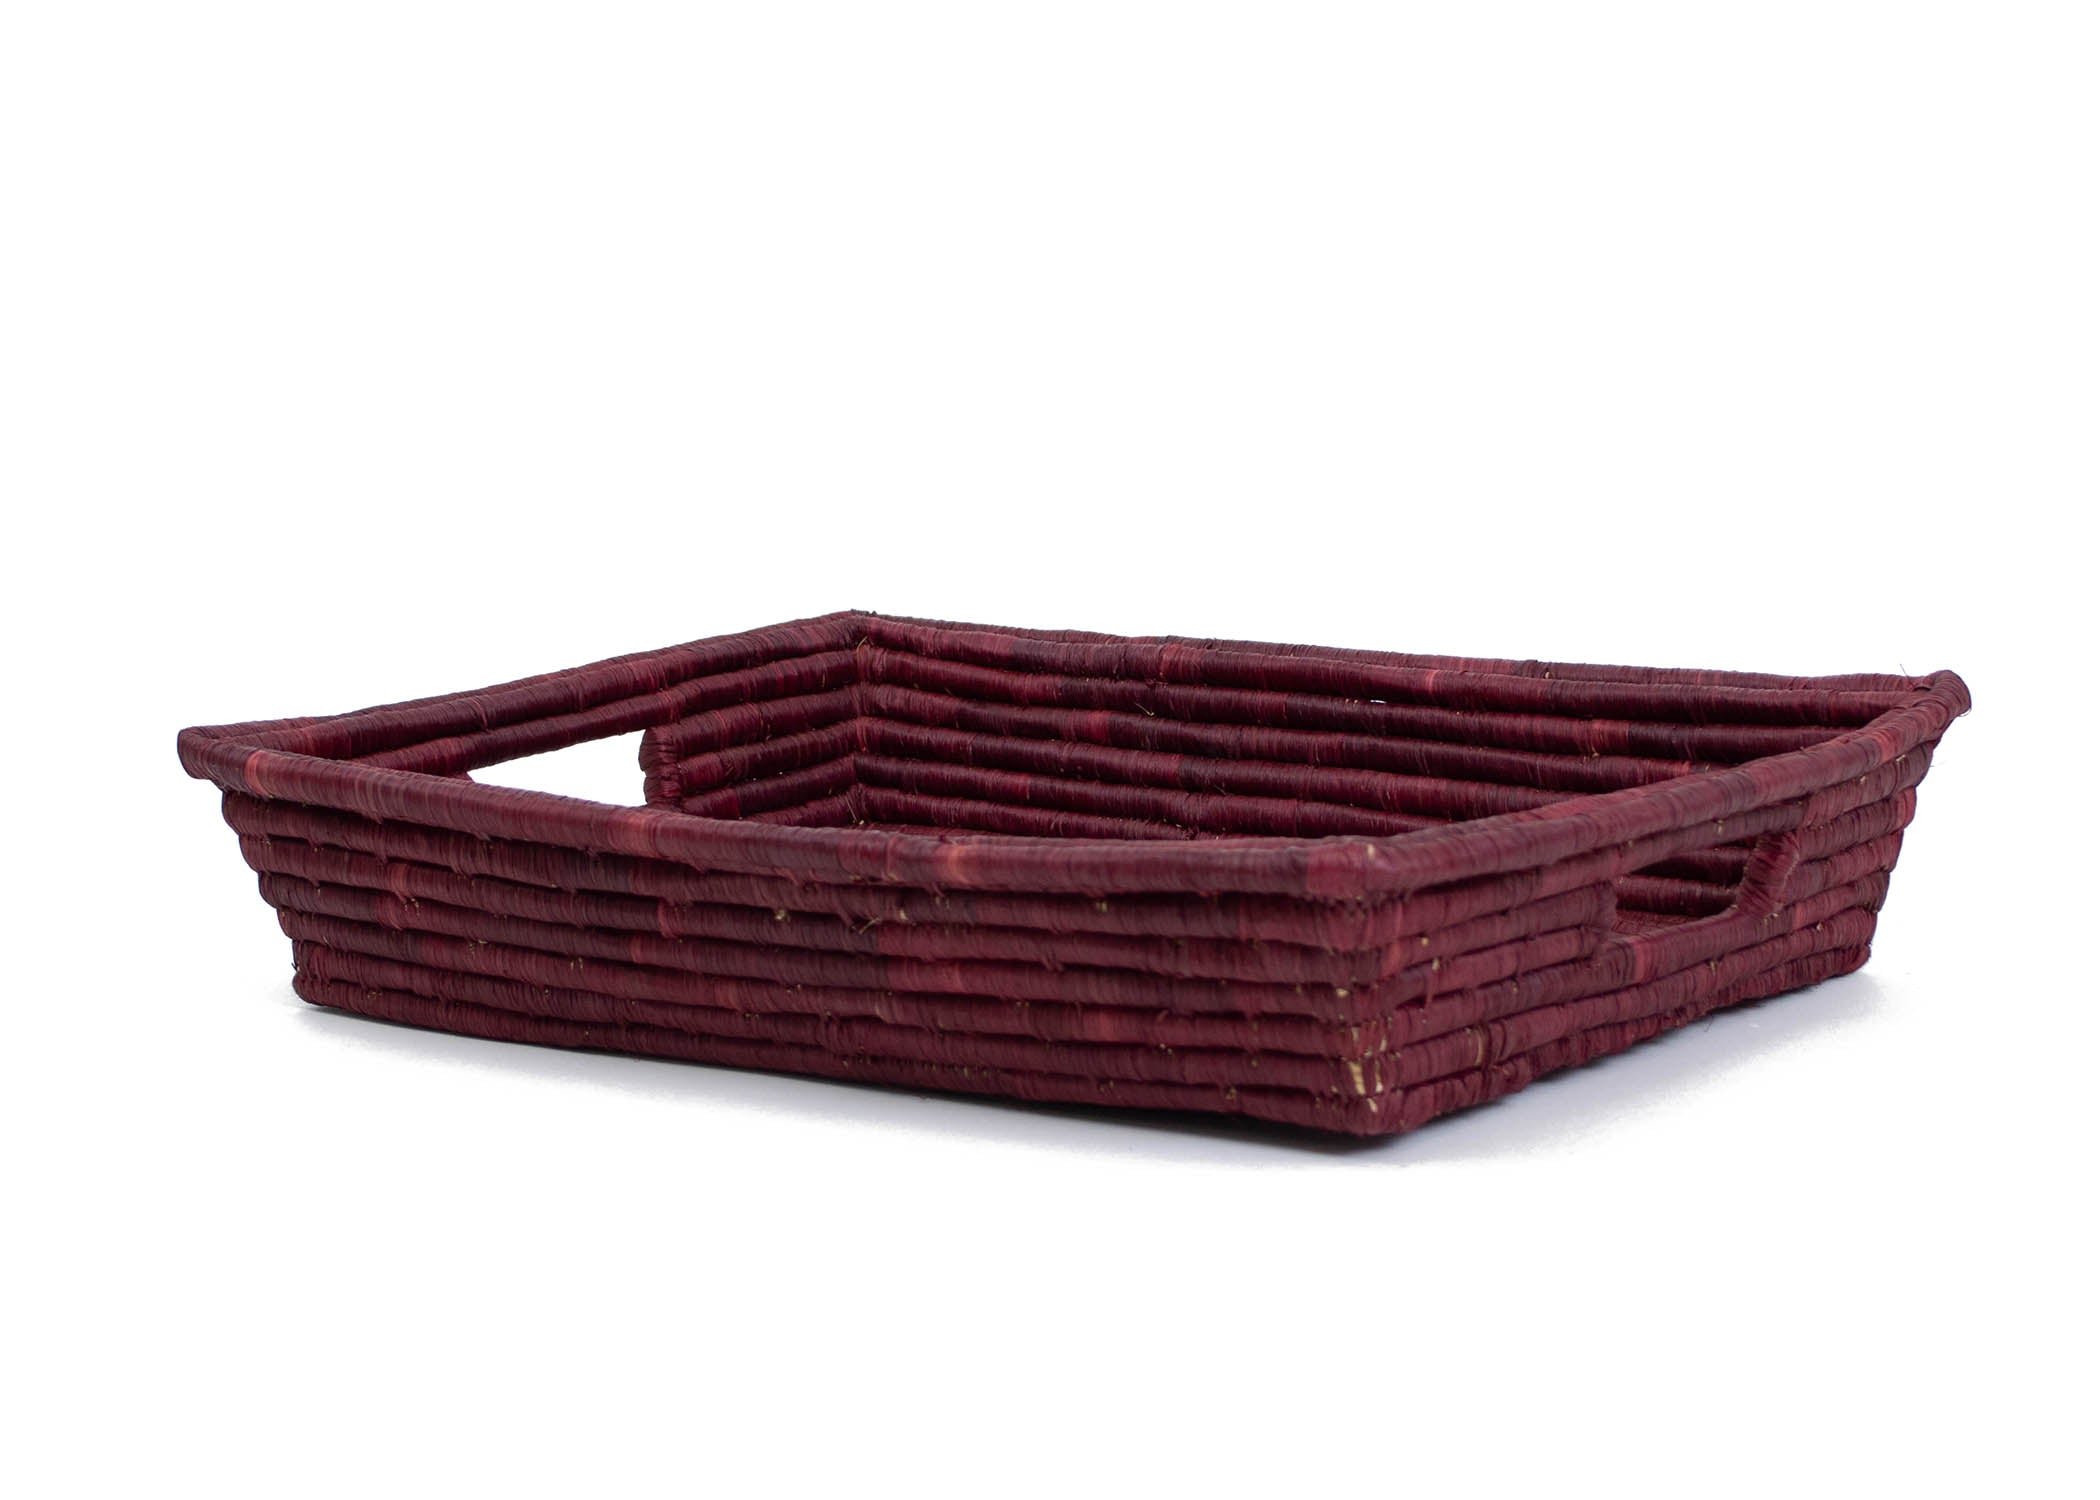 Berry Raffia Tray - KAZI - Artisan made high quality home decor and wall art